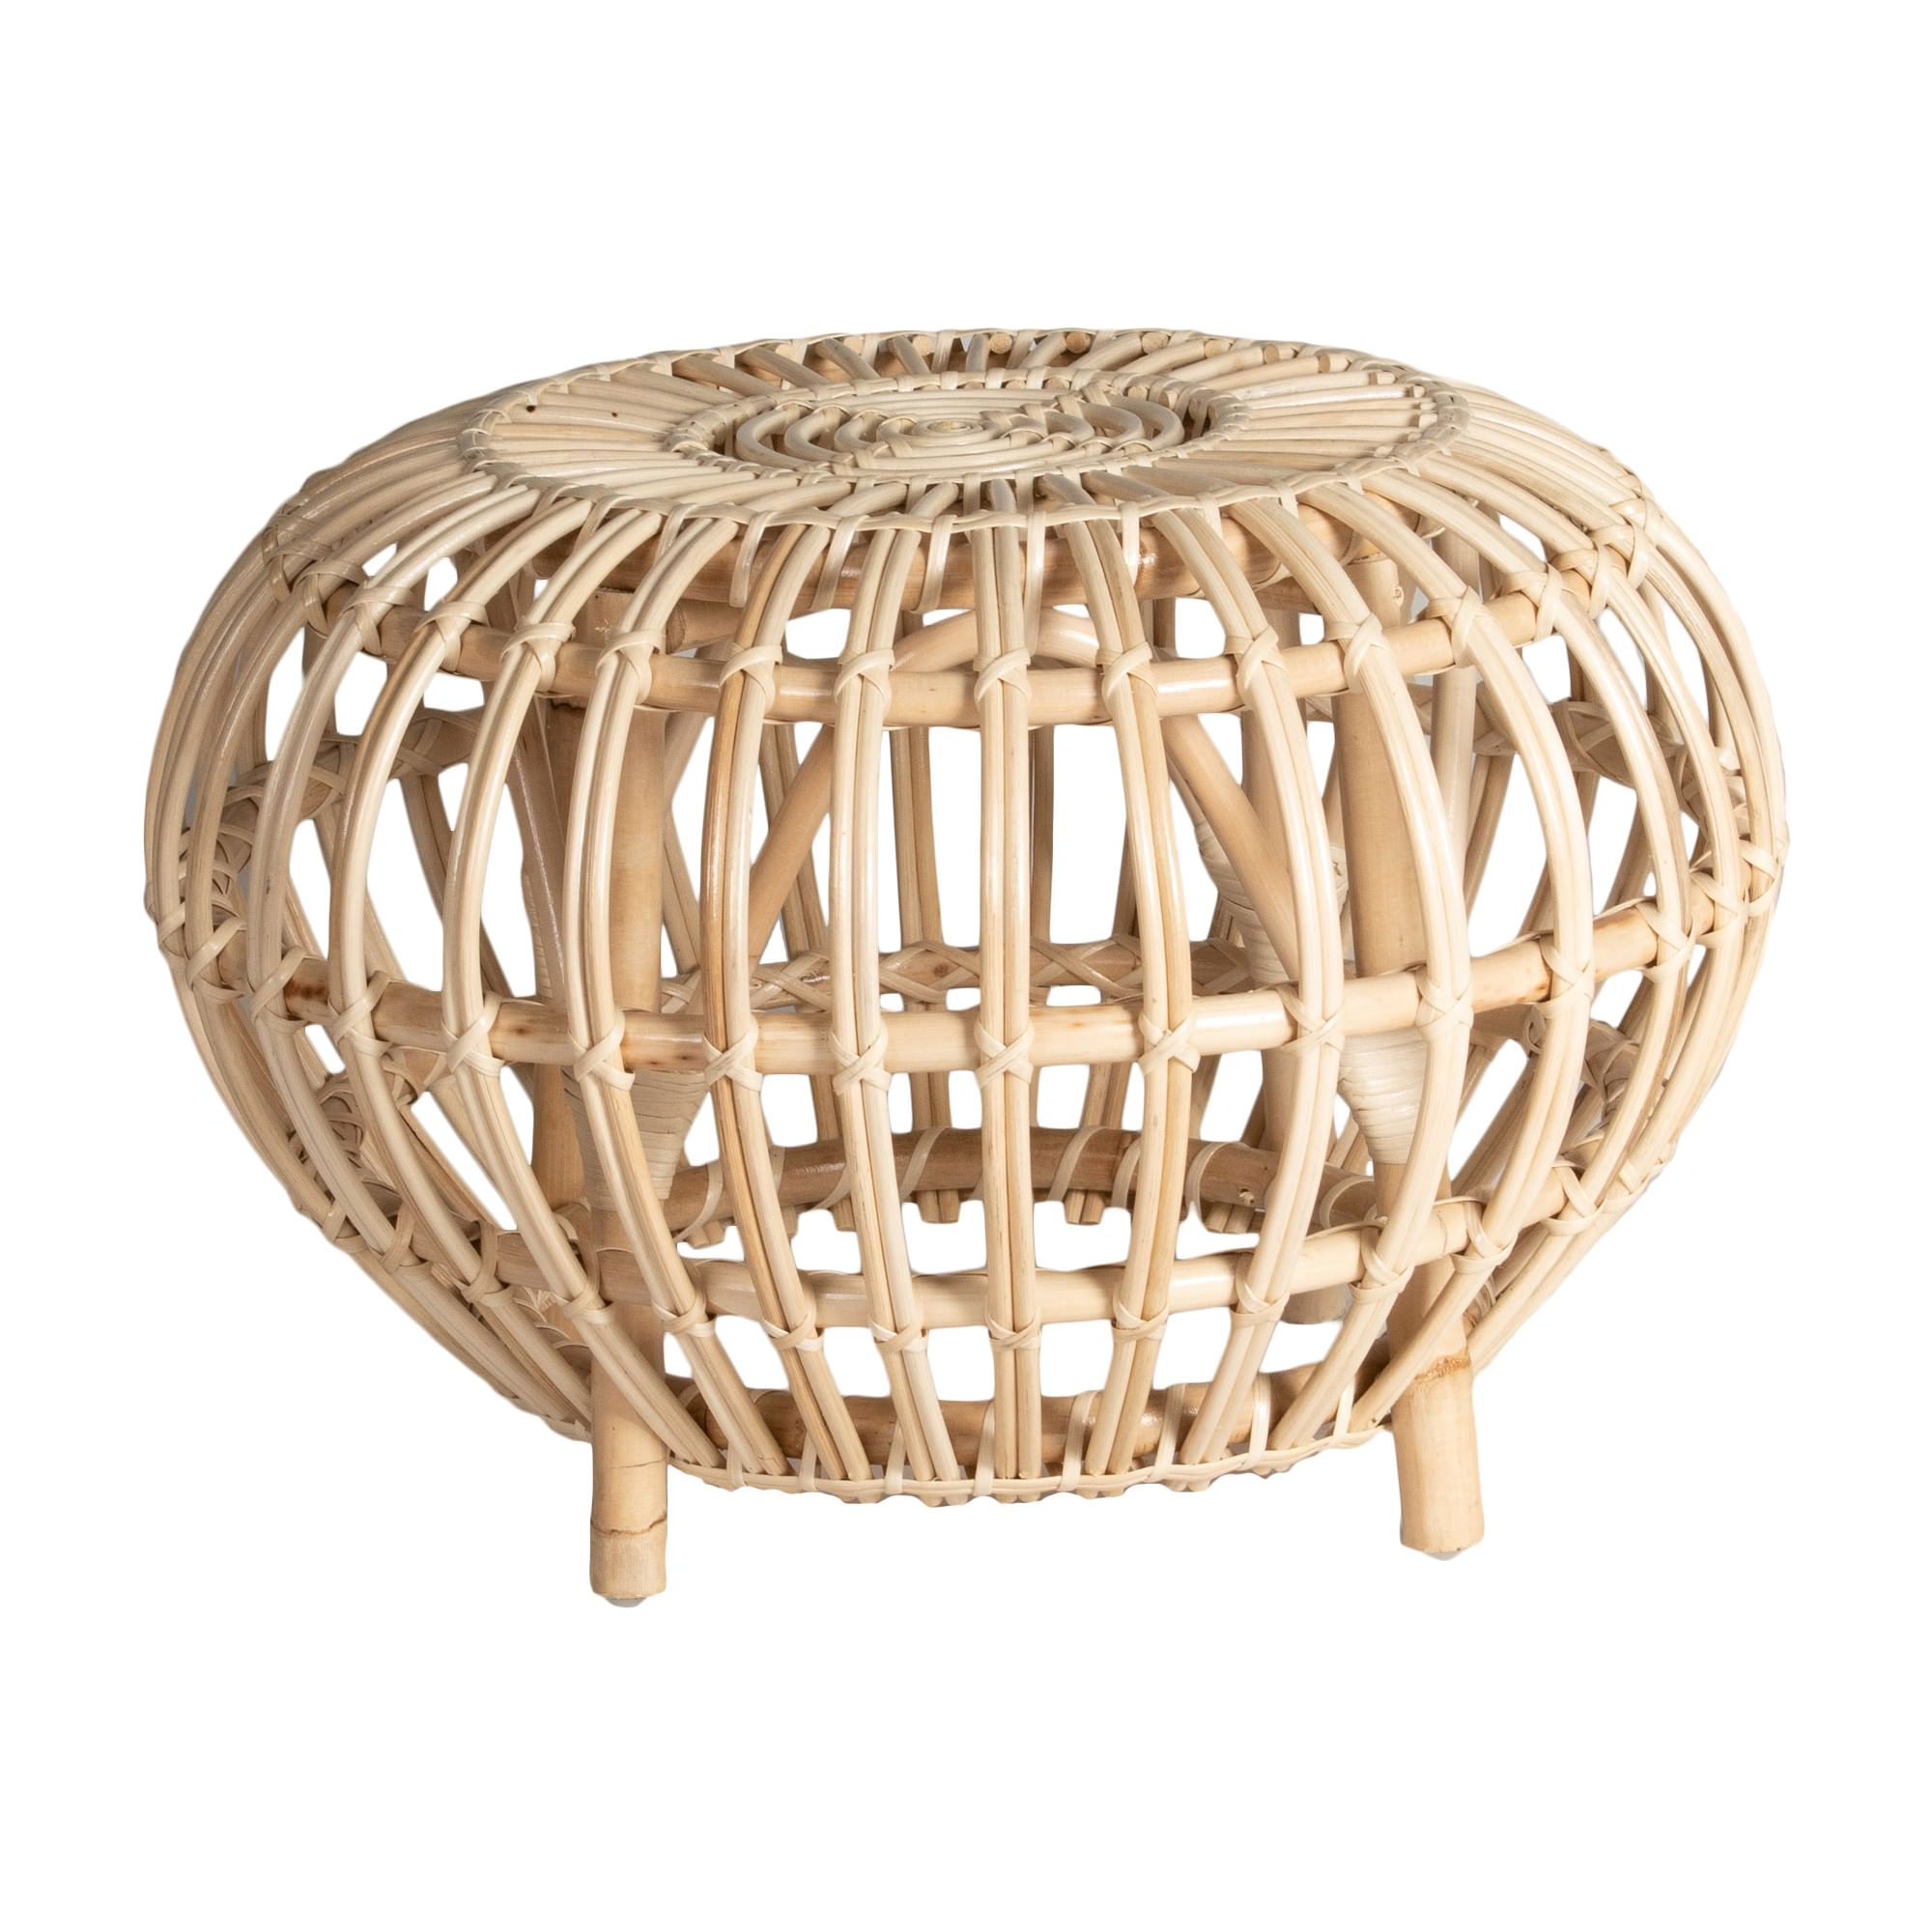 Doral Rattan Round Side Table, Natural